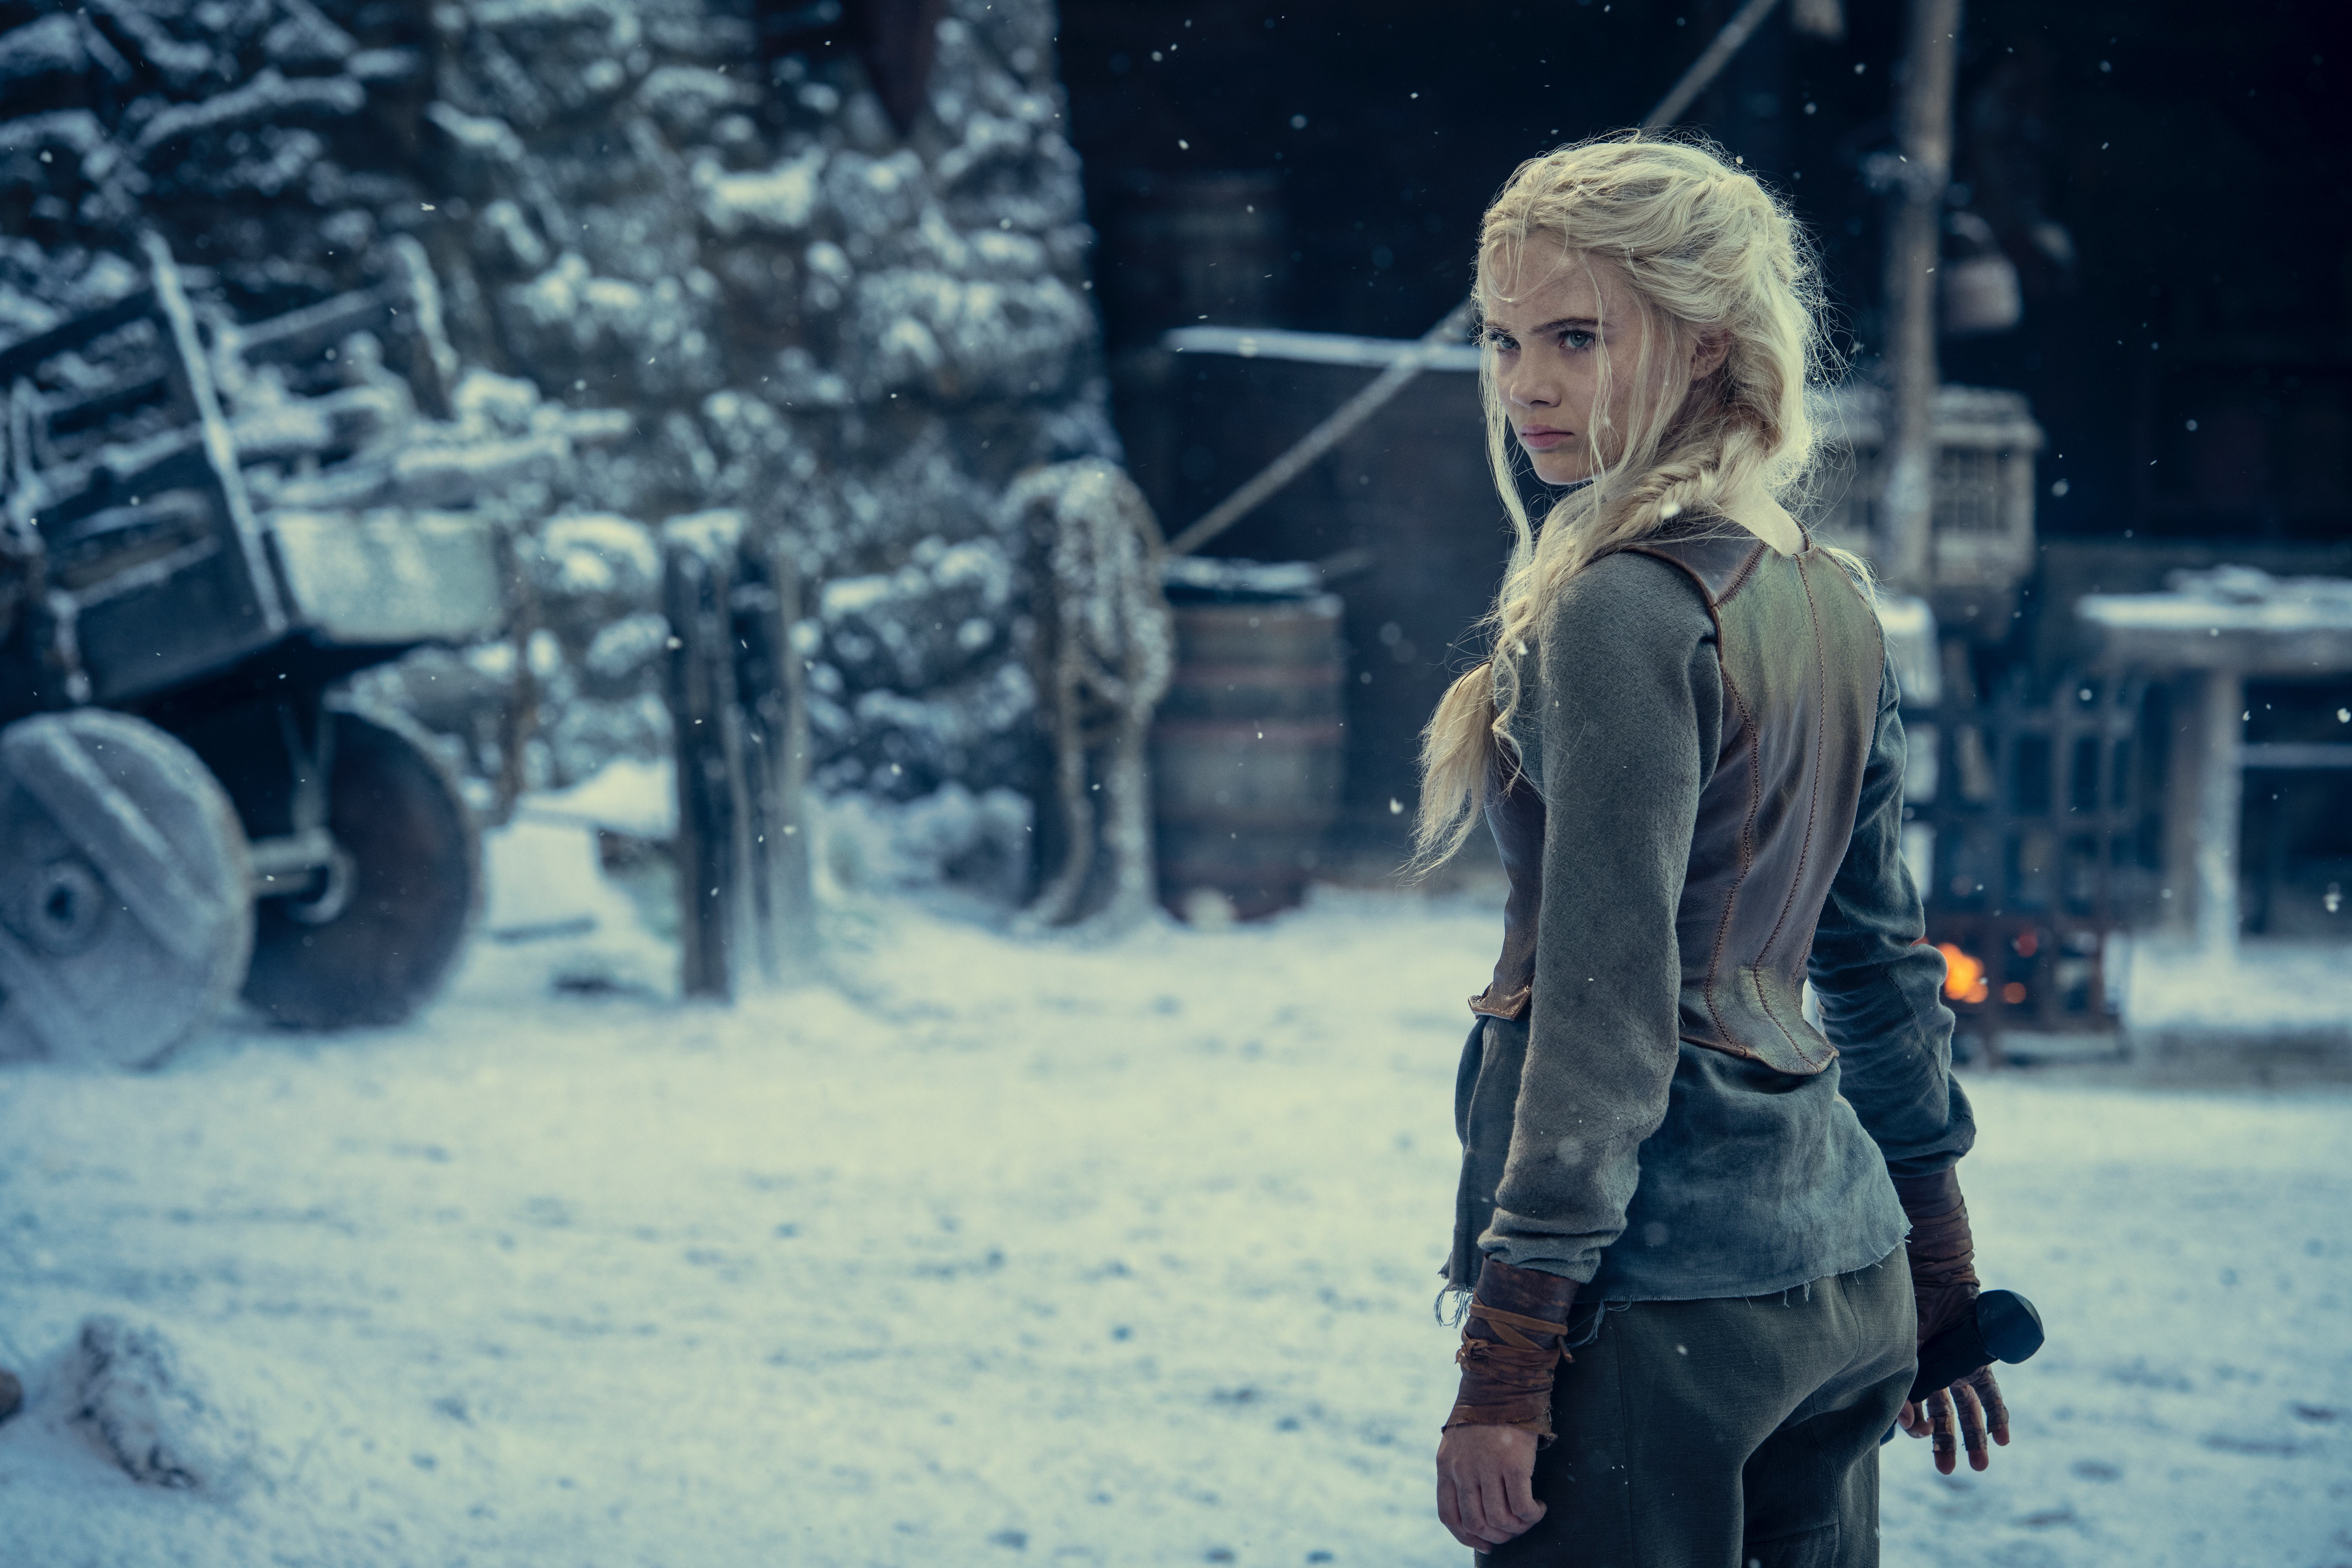 'The Witcher' Season 2: Release Date, Cast, Trailer, News